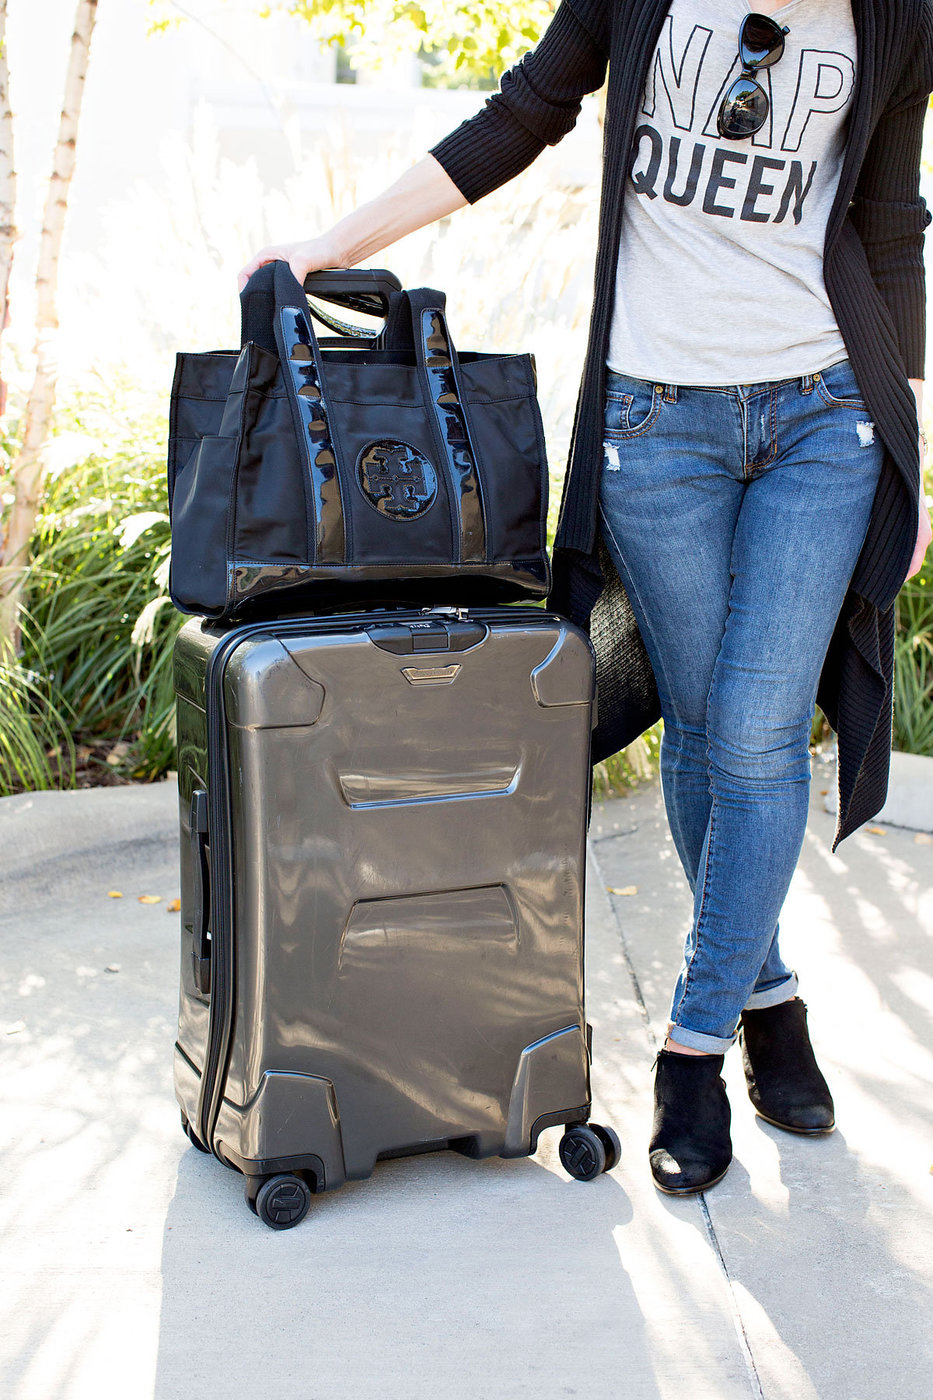 luggage, suitcase, spinner suitcase, hardside luggage, briggs and riley luggage, briggs and riliey, love your luggage